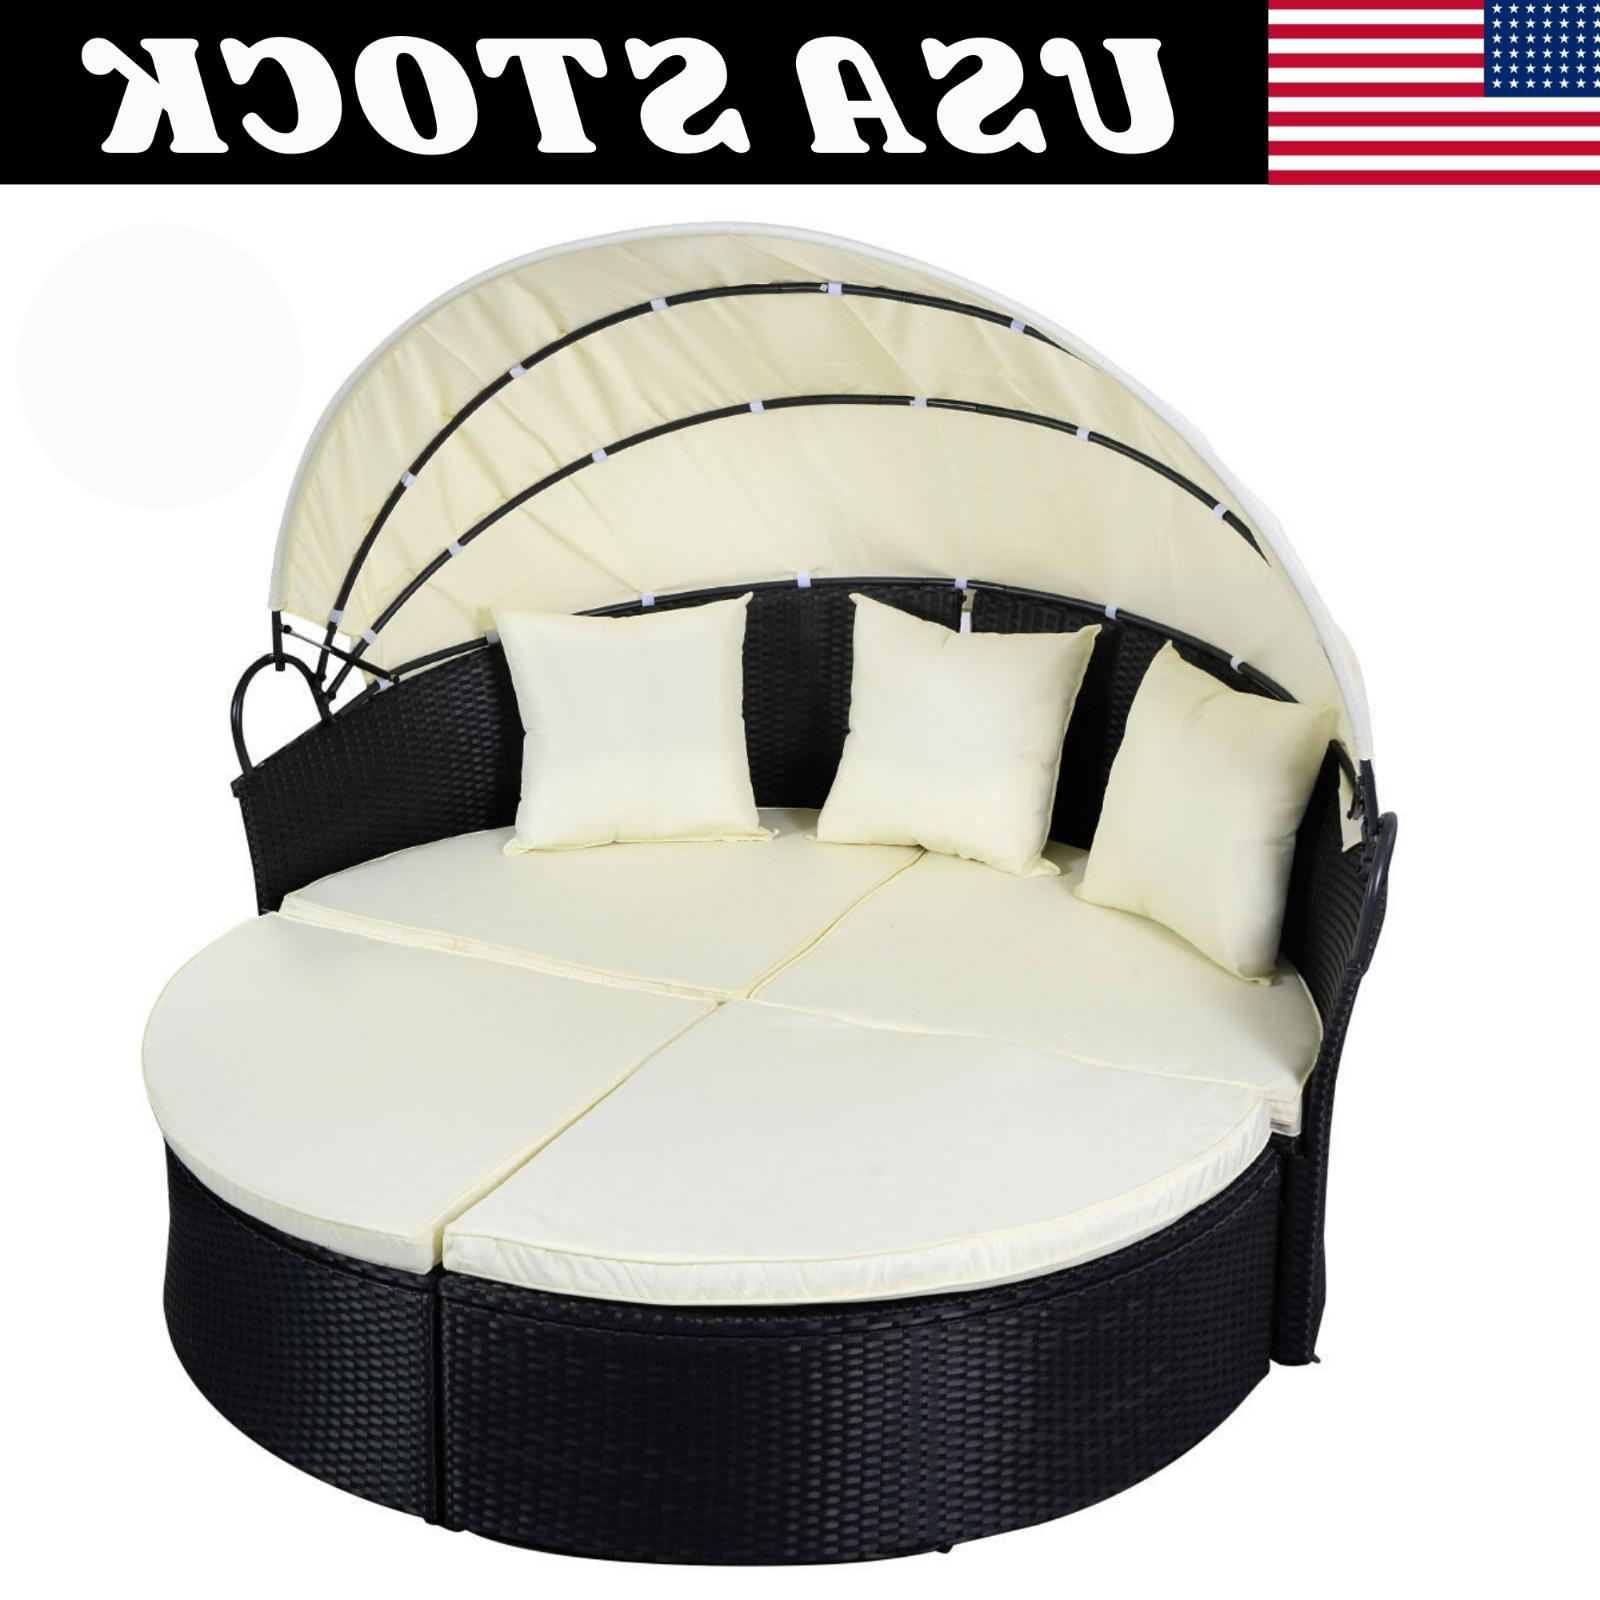 Outdoor Furniture Round Daybed